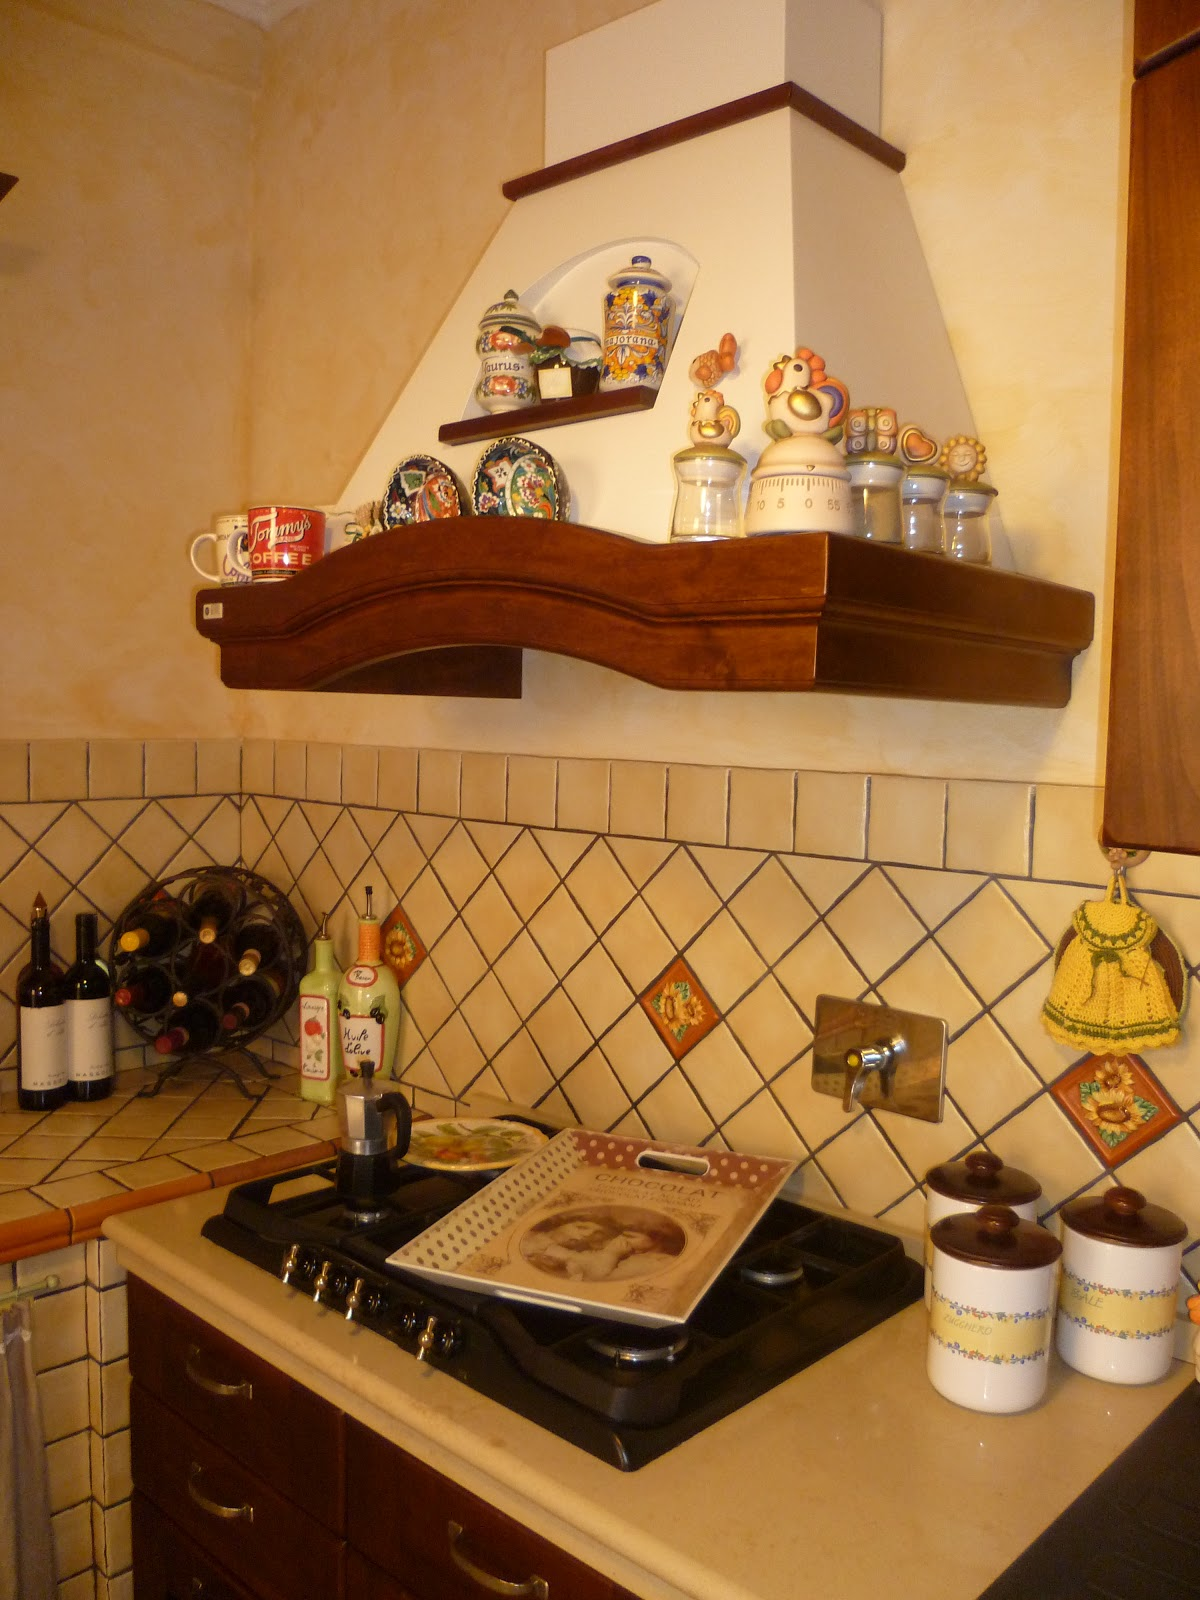 100 love accessori da cucina country - Tendine da cucina ...